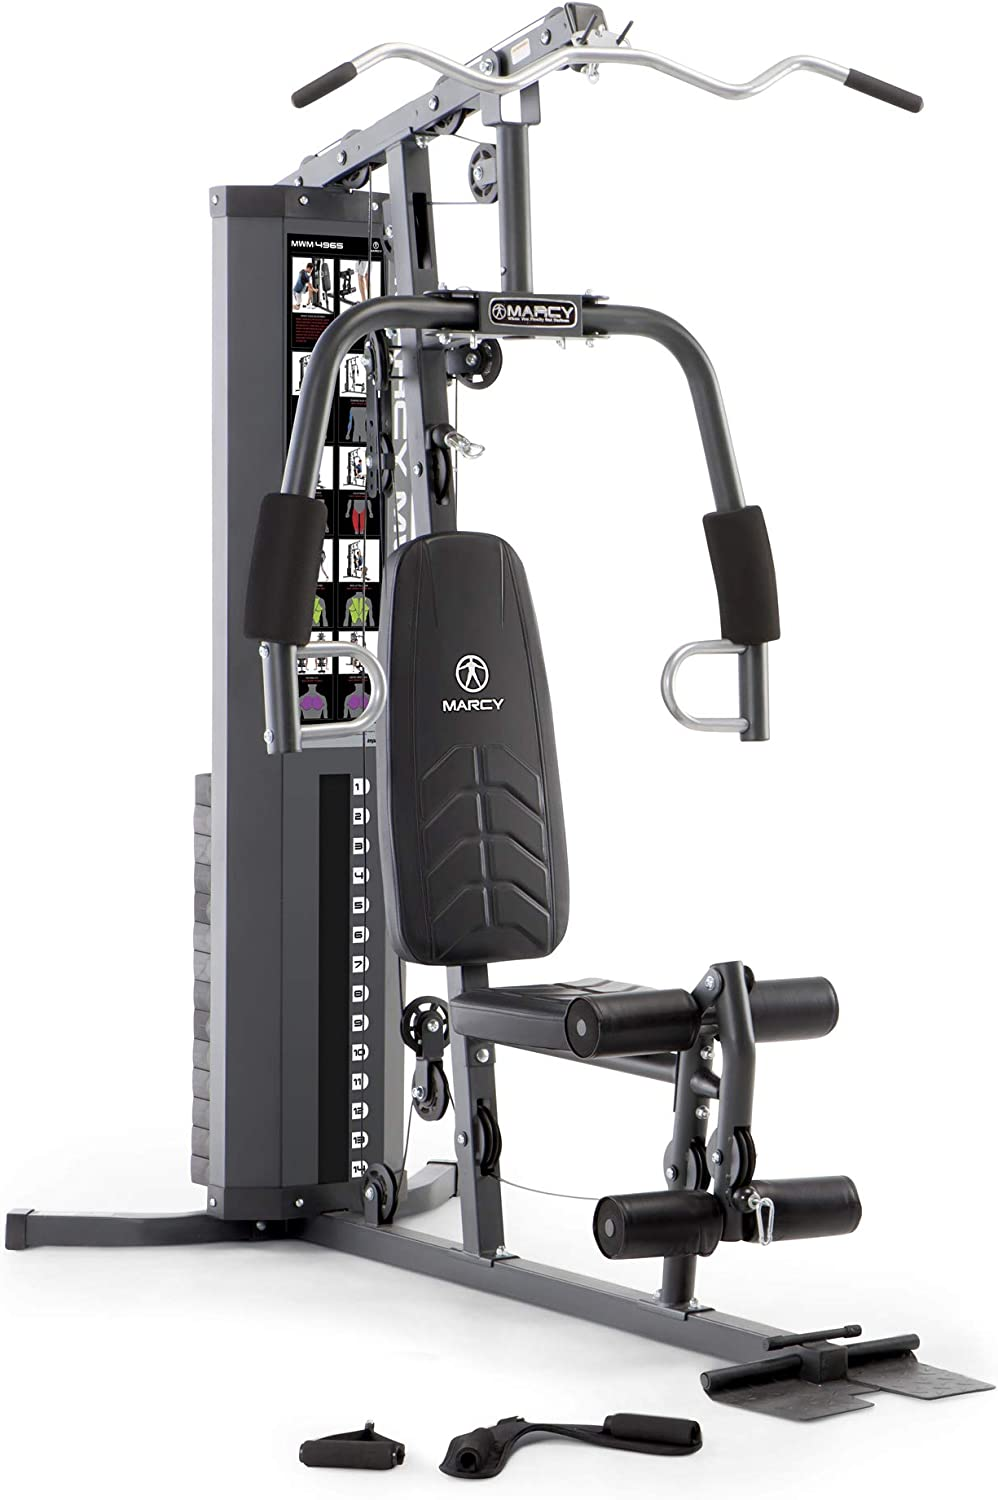 Marcy 150lb. Stack Home Gym